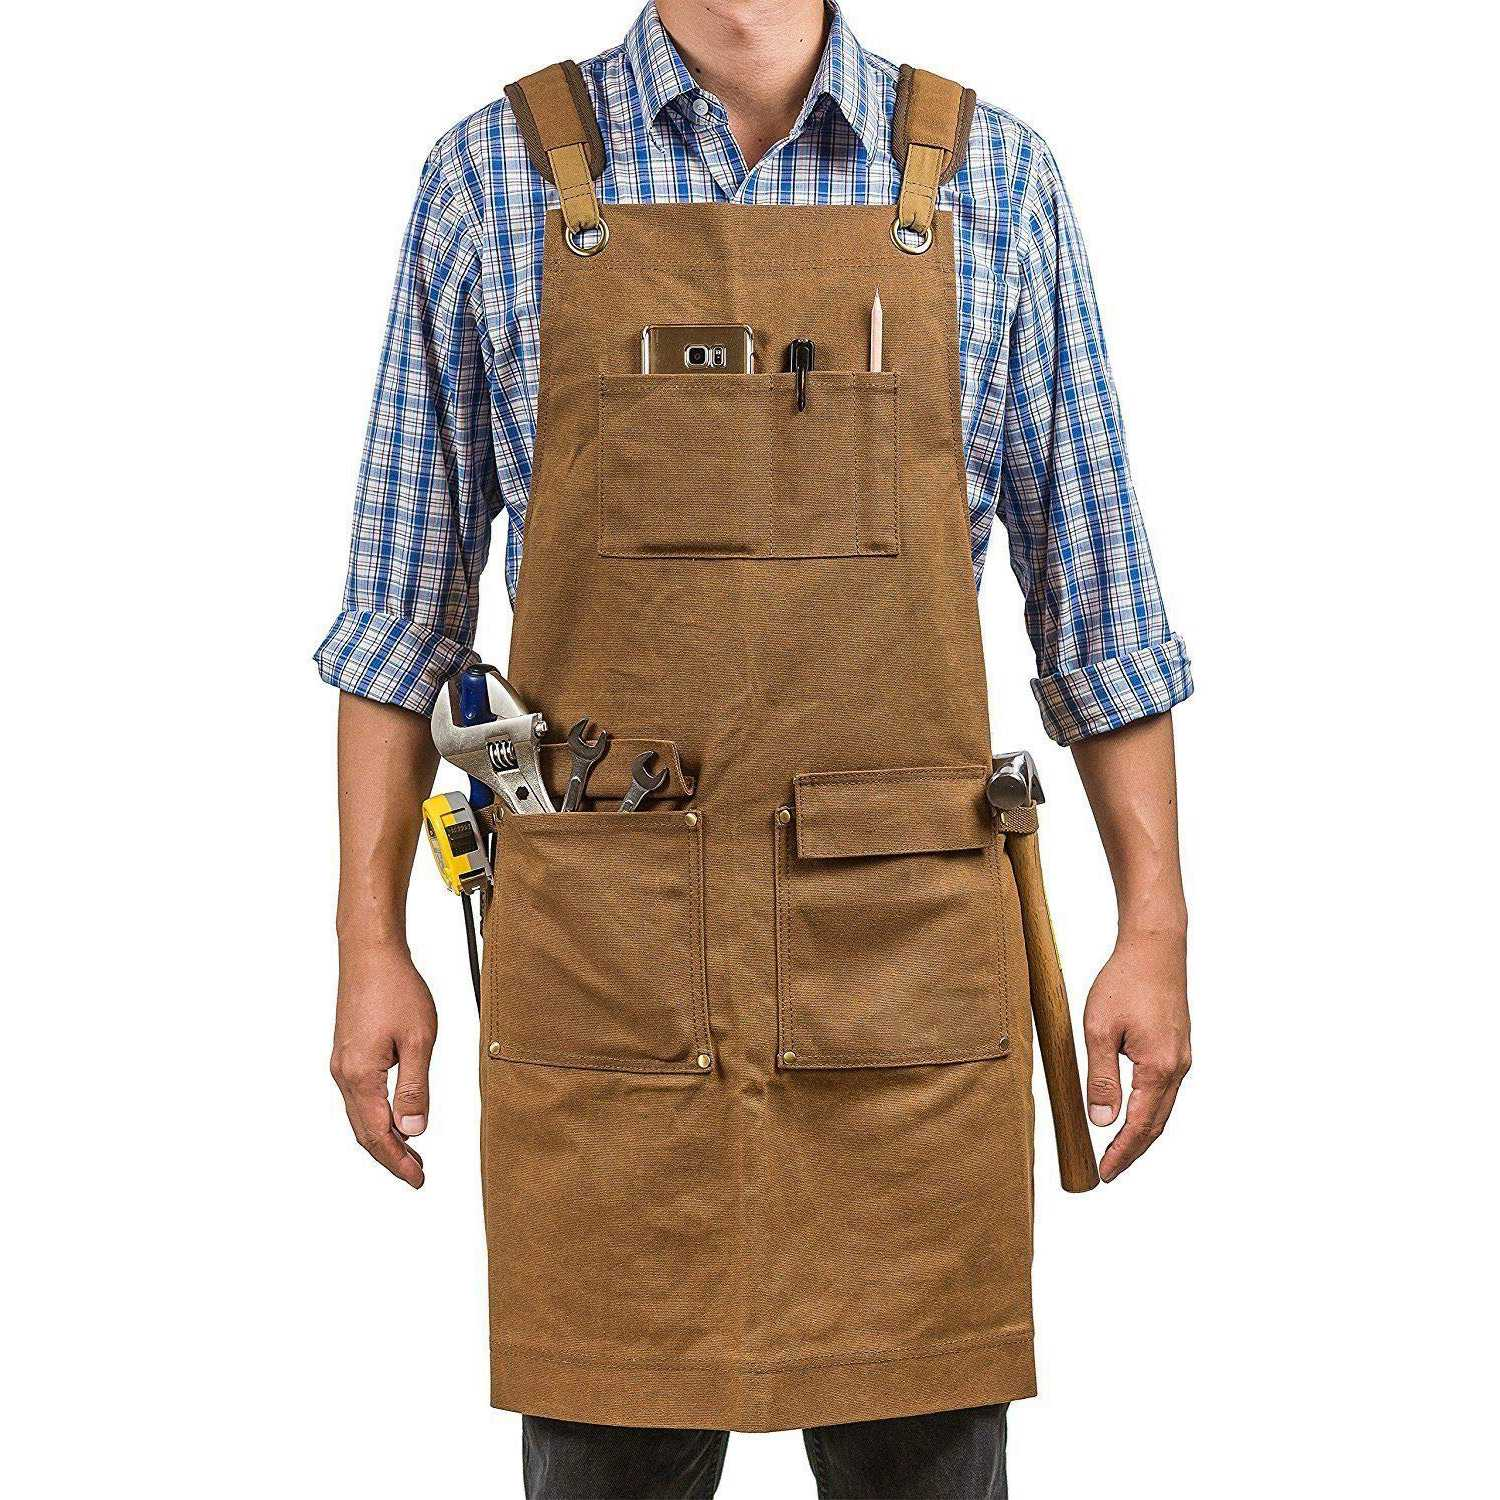 Luxury Waxed Canvas Shop Apron | Heavy Duty Work Apron For Men & Women With Pocket & Cross-Back Straps | Adjustable Tool Apron image